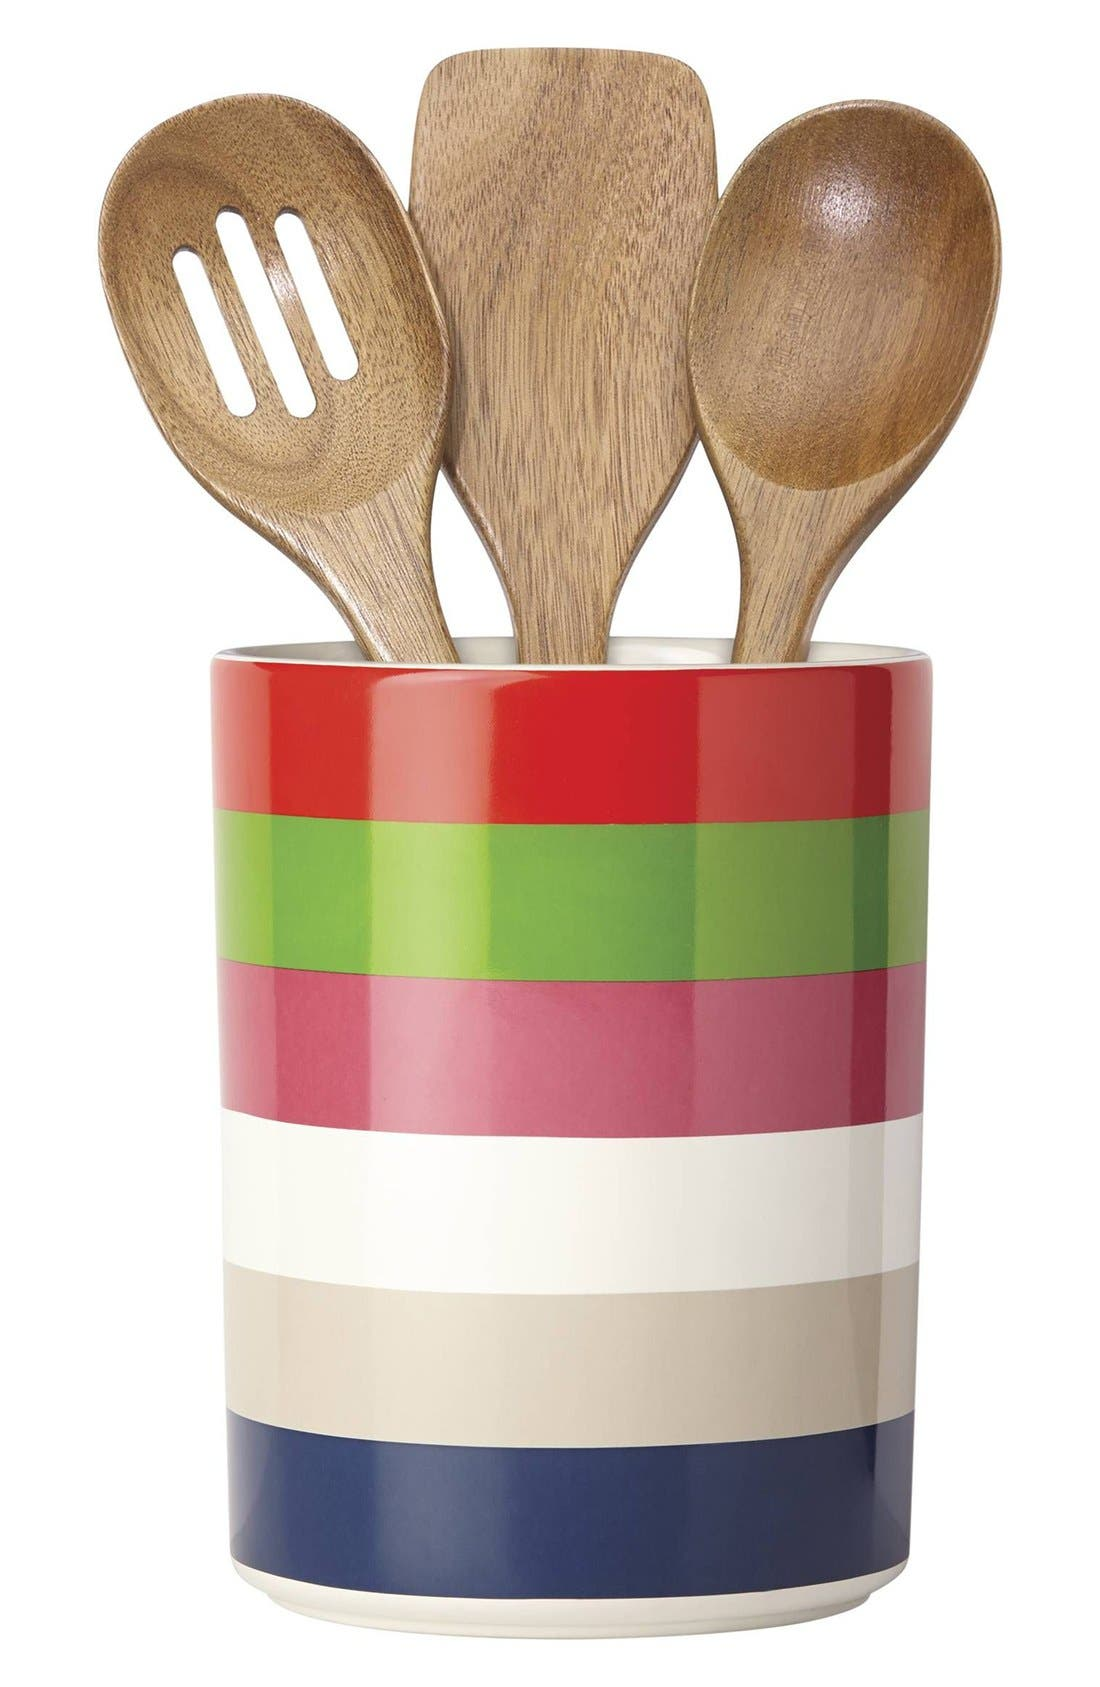 'all in good taste' 'deco' utensil crock & wooden spoons,                             Main thumbnail 1, color,                             Multi Color Stripe